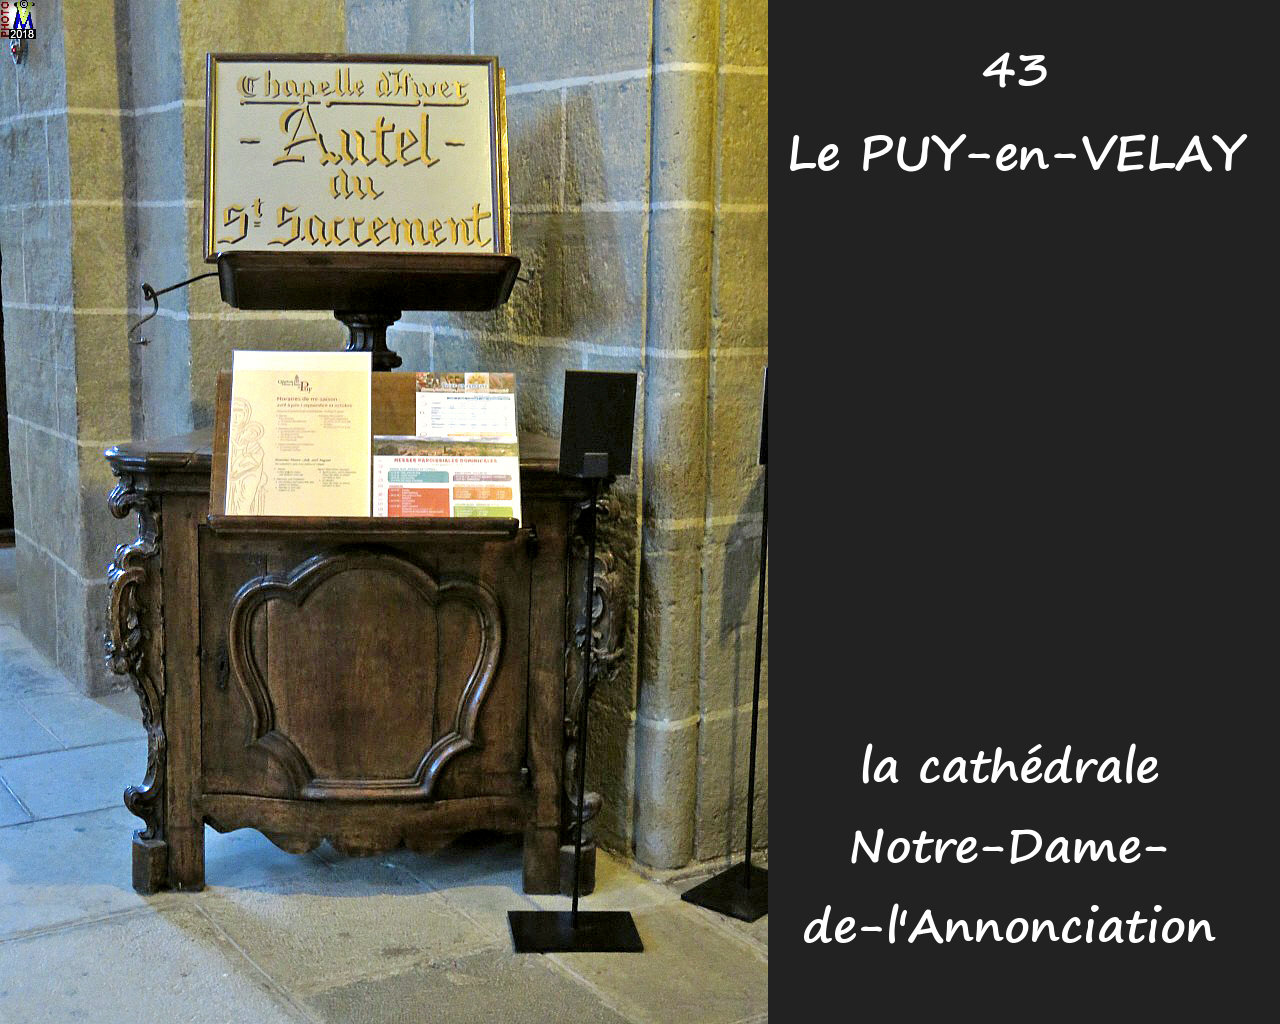 43PUY-EN-VELAY_cathedrale_266.jpg